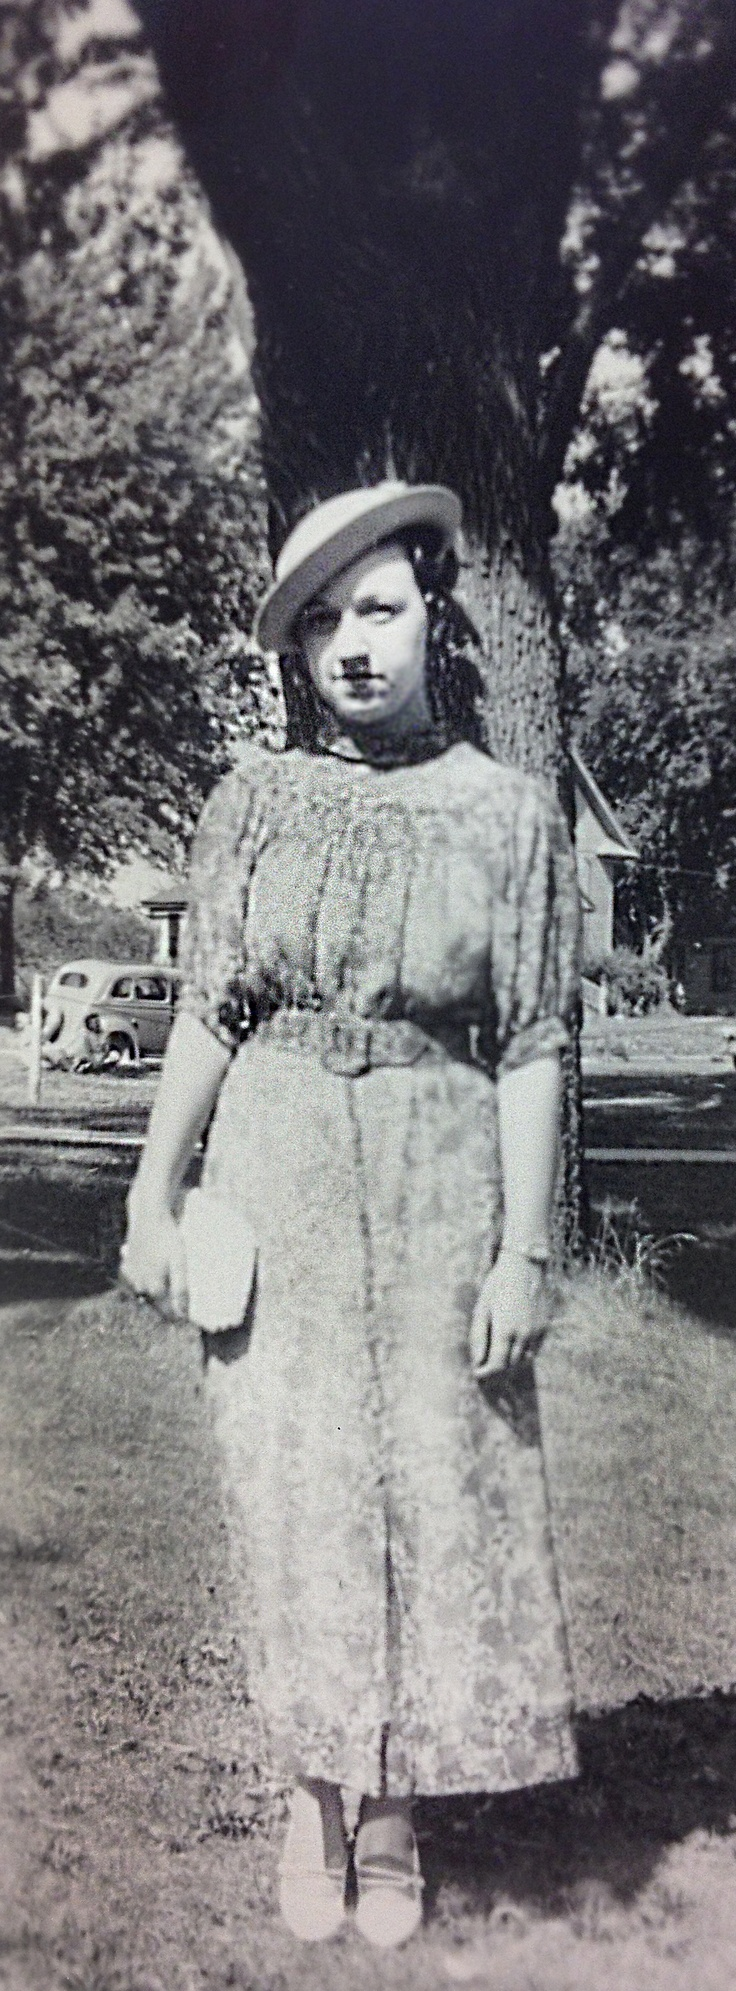 Kathryn Parrish, complete outfit winner at County Contest Day (1936, Stark County, IL)